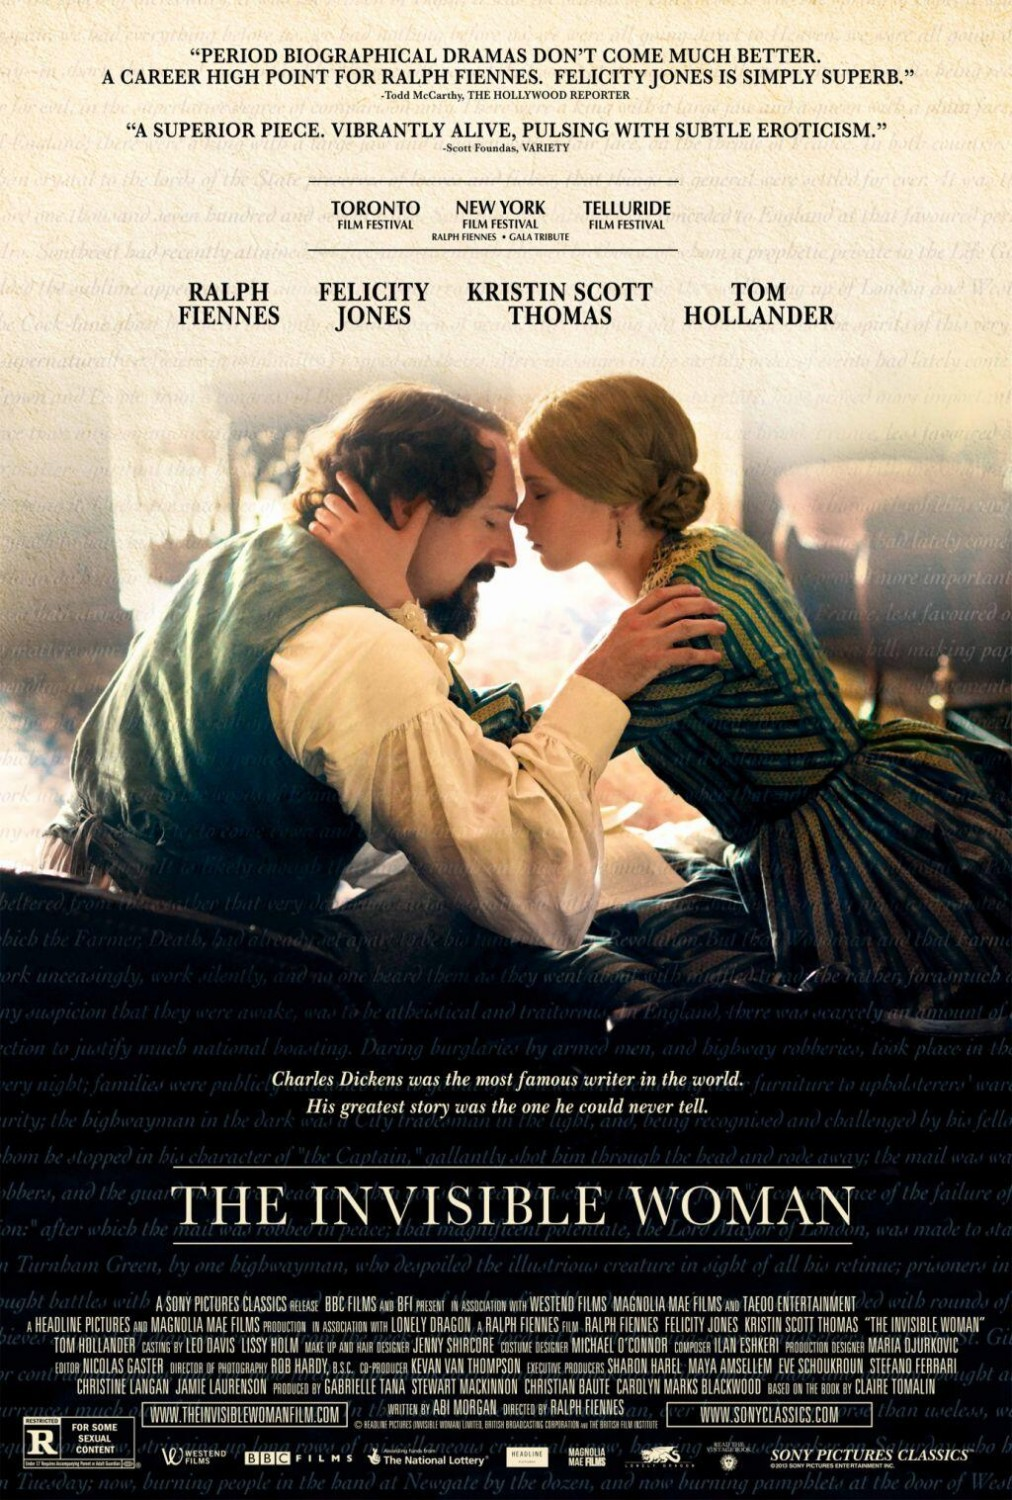 Poster 21047707 20131030101649306 Baixar Filme The Invisible Woman Dublado 2014 + Legenda (Completo)